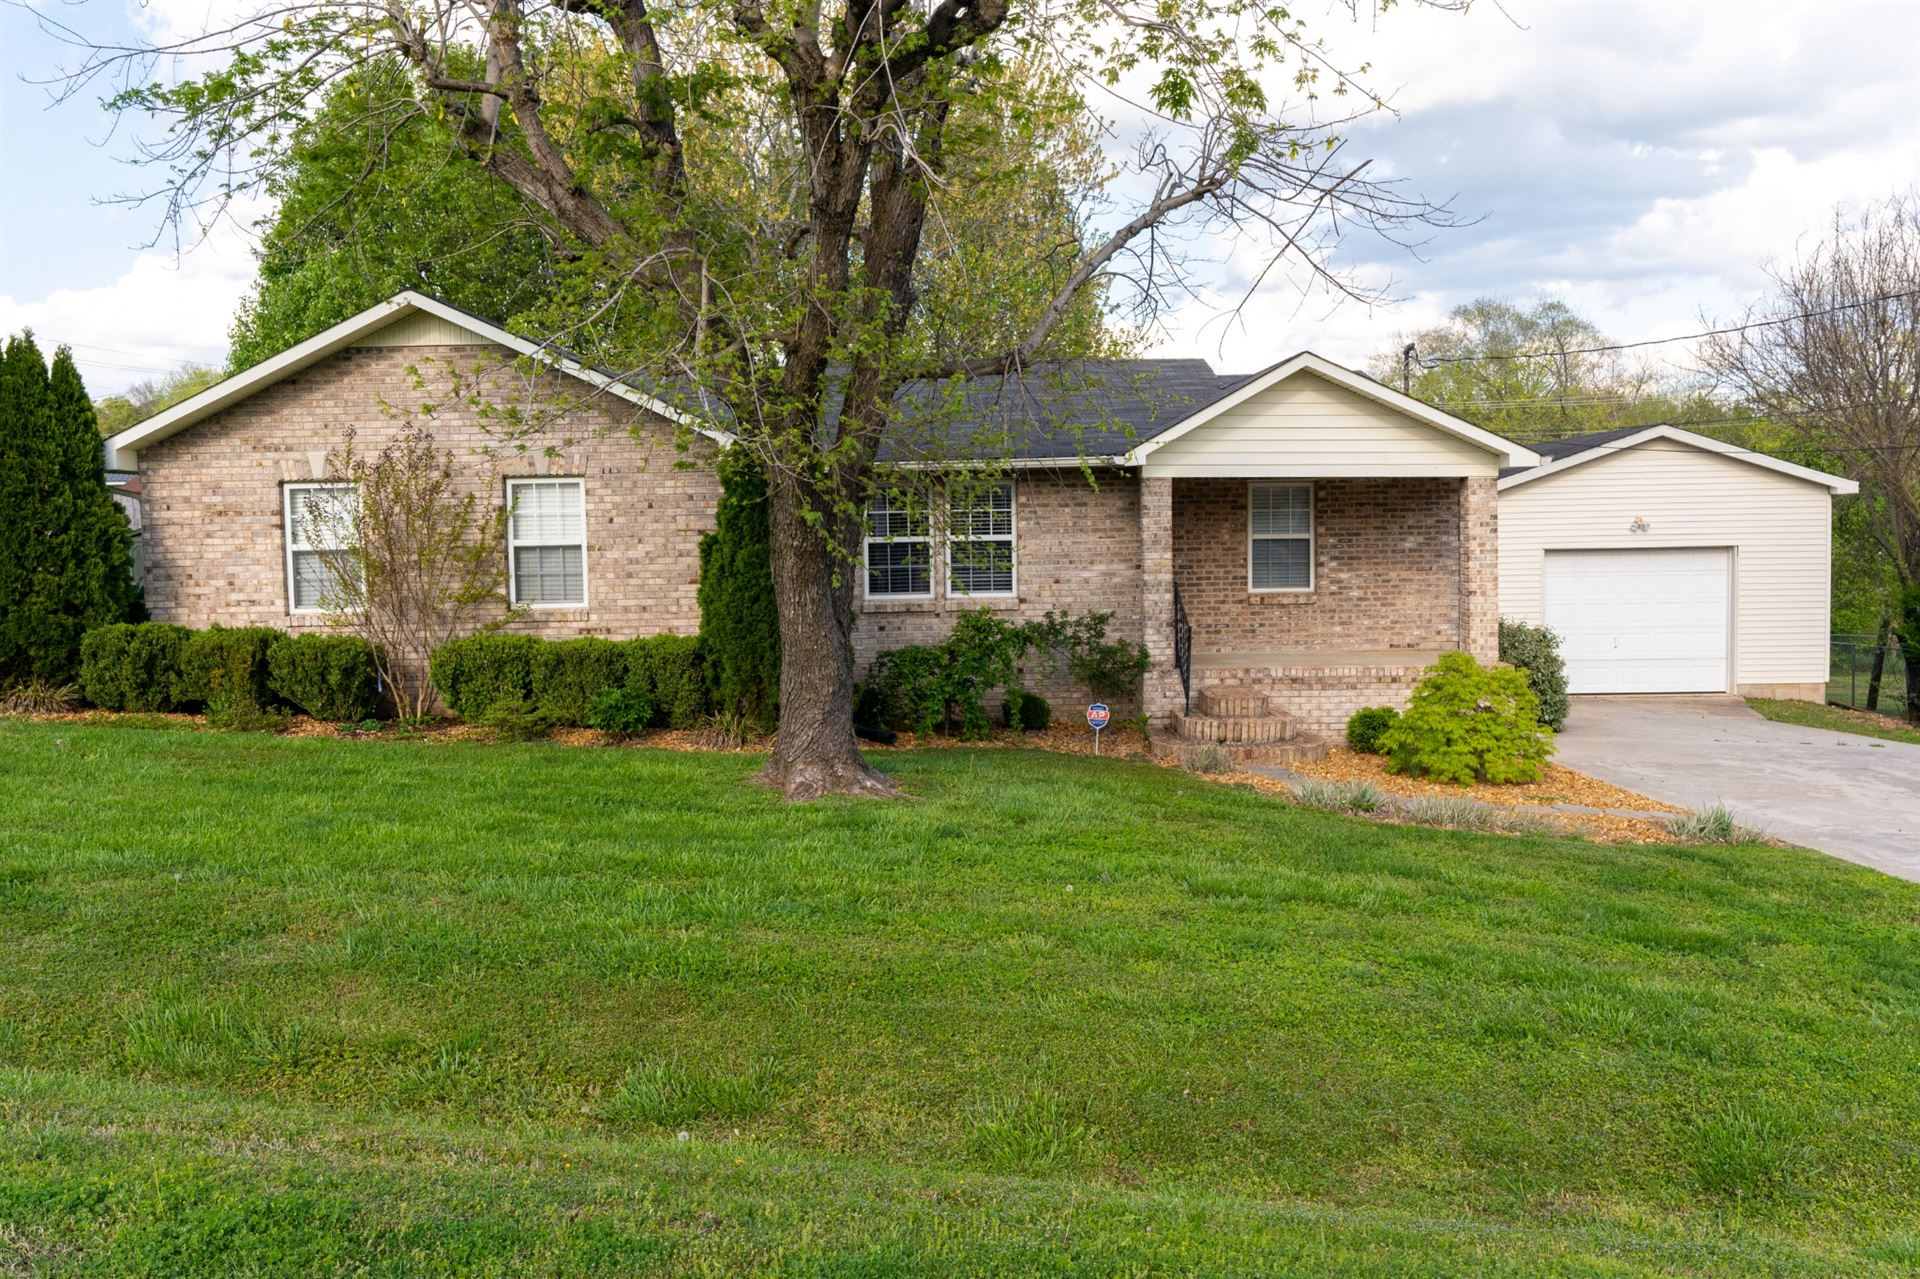 303 Russell St, Winchester, TN 37398 - MLS#: 2243683